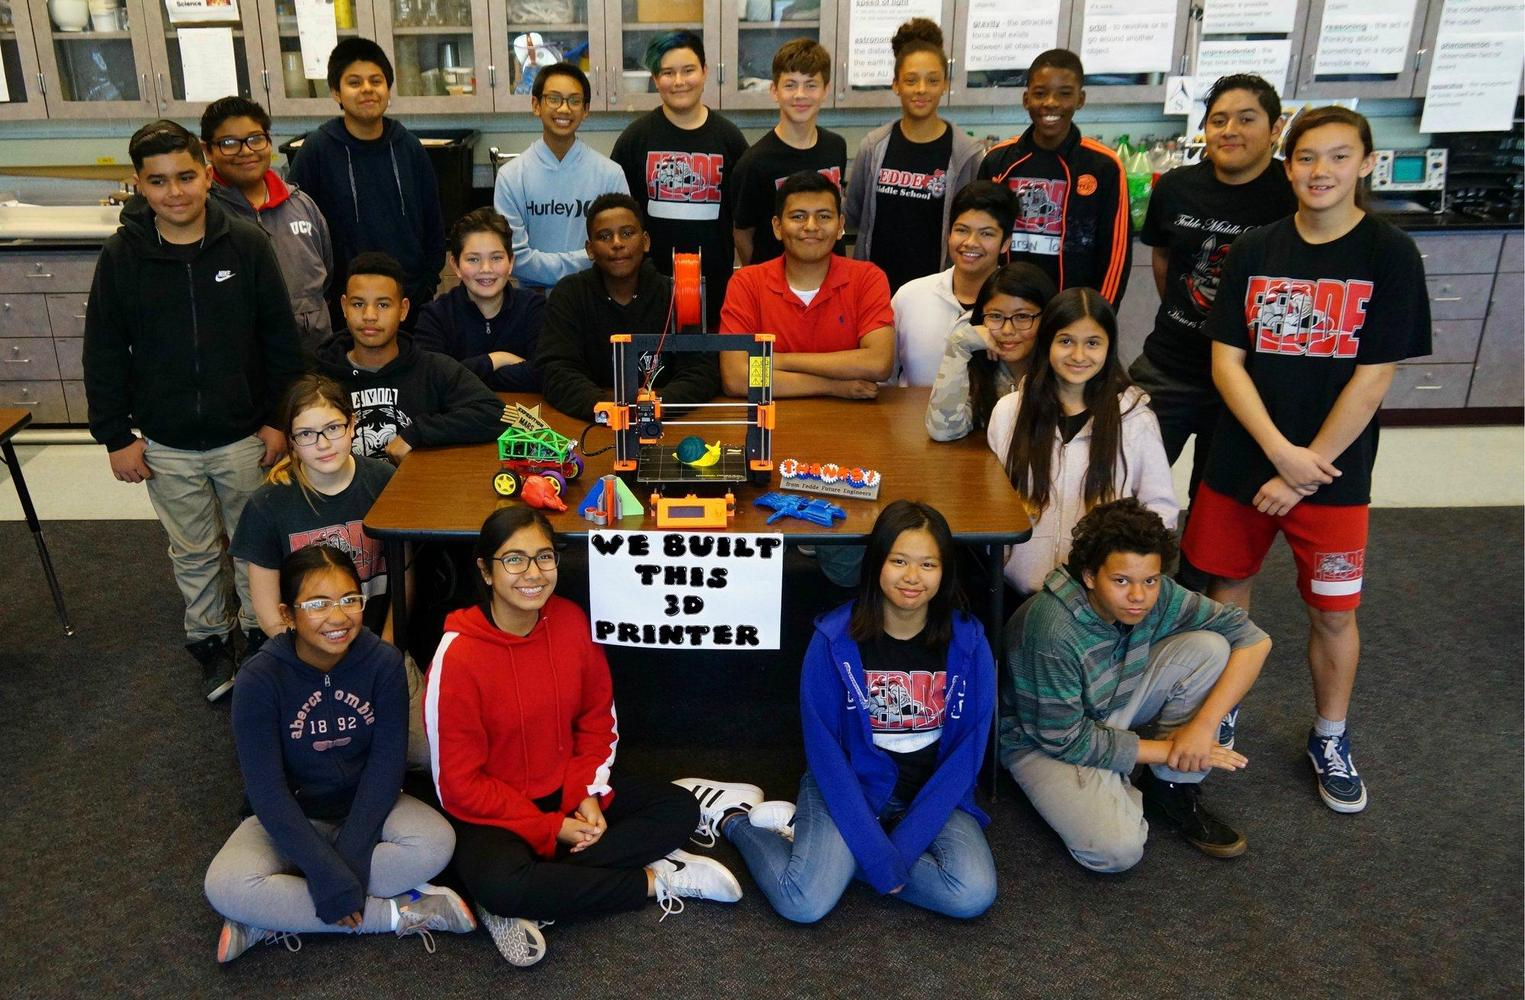 Student photo with 3d printer they built